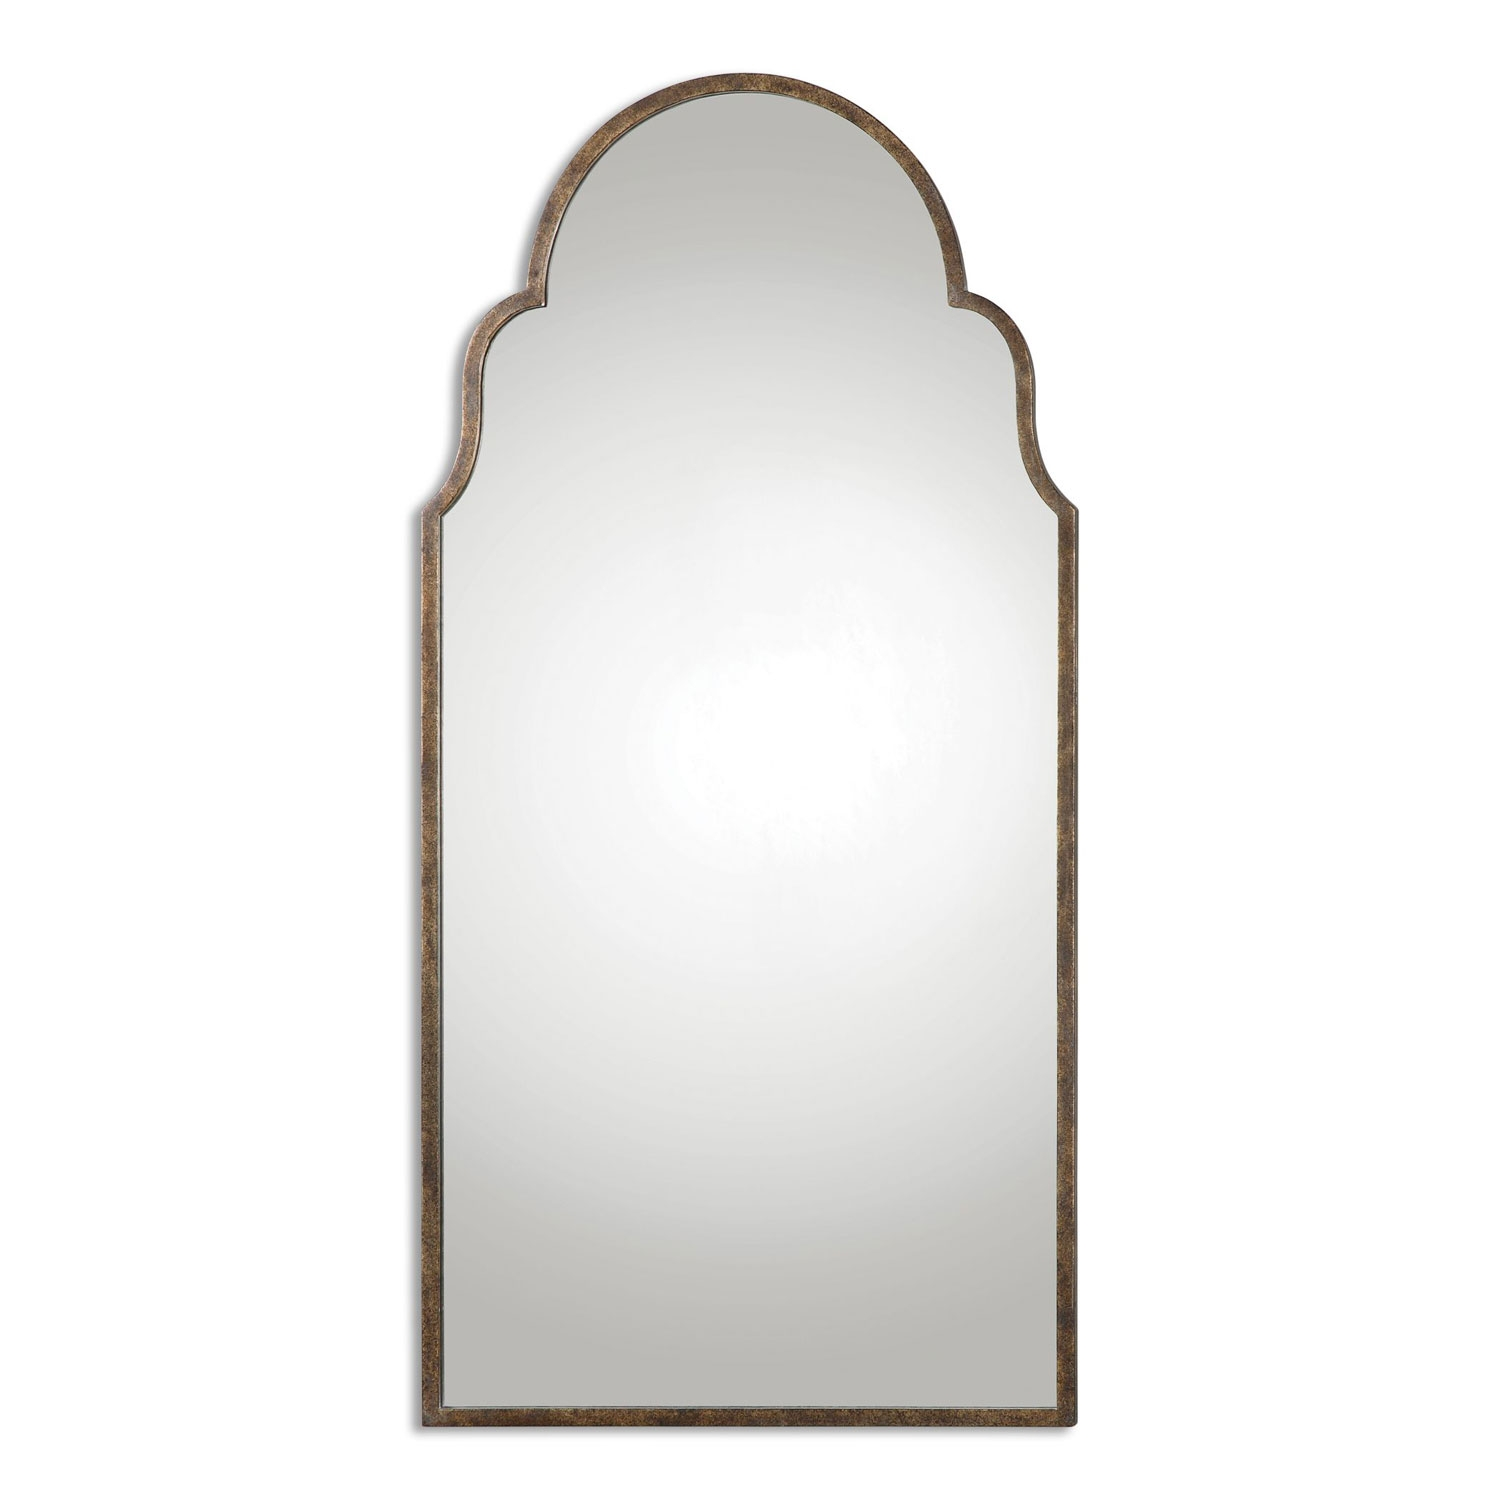 Curved Top Wall Mirror Curved Top Wall Mirror arched crowned mirrors bellacor 1500 X 1500